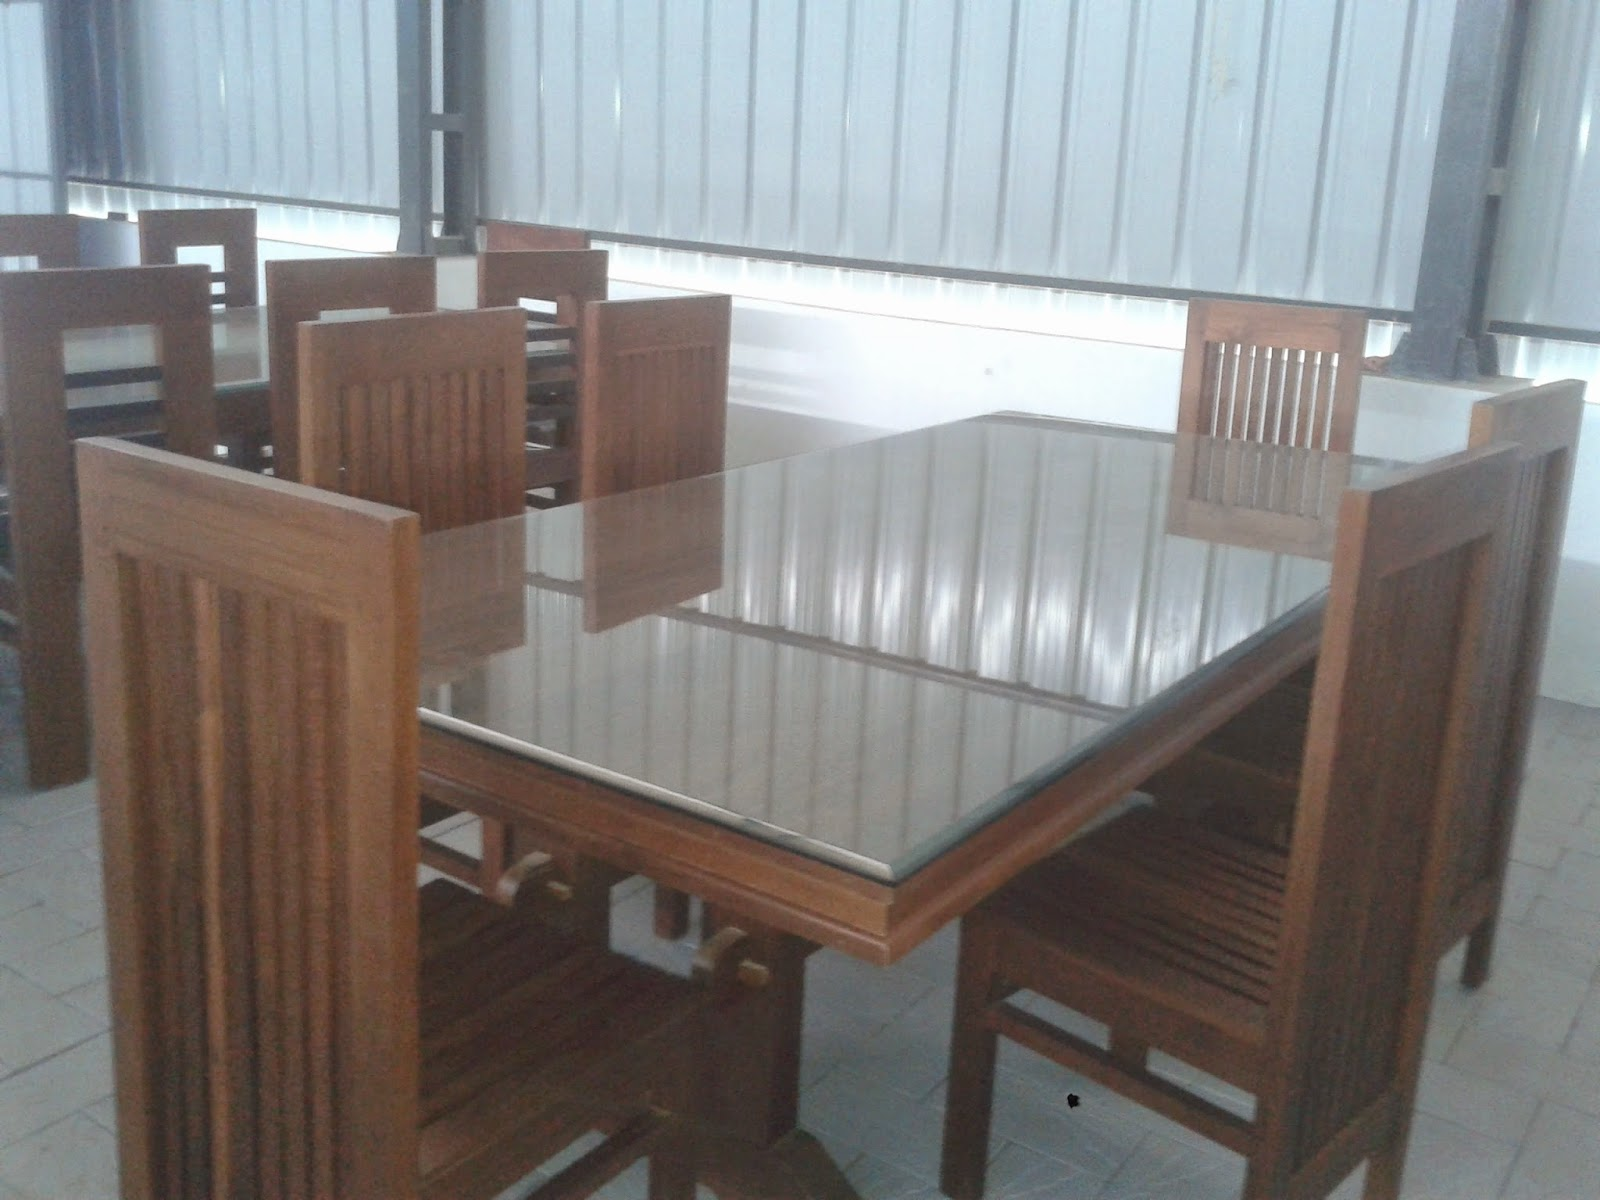 Kerala style carpenter works and designs december 2014 for Latest wooden dining table designs